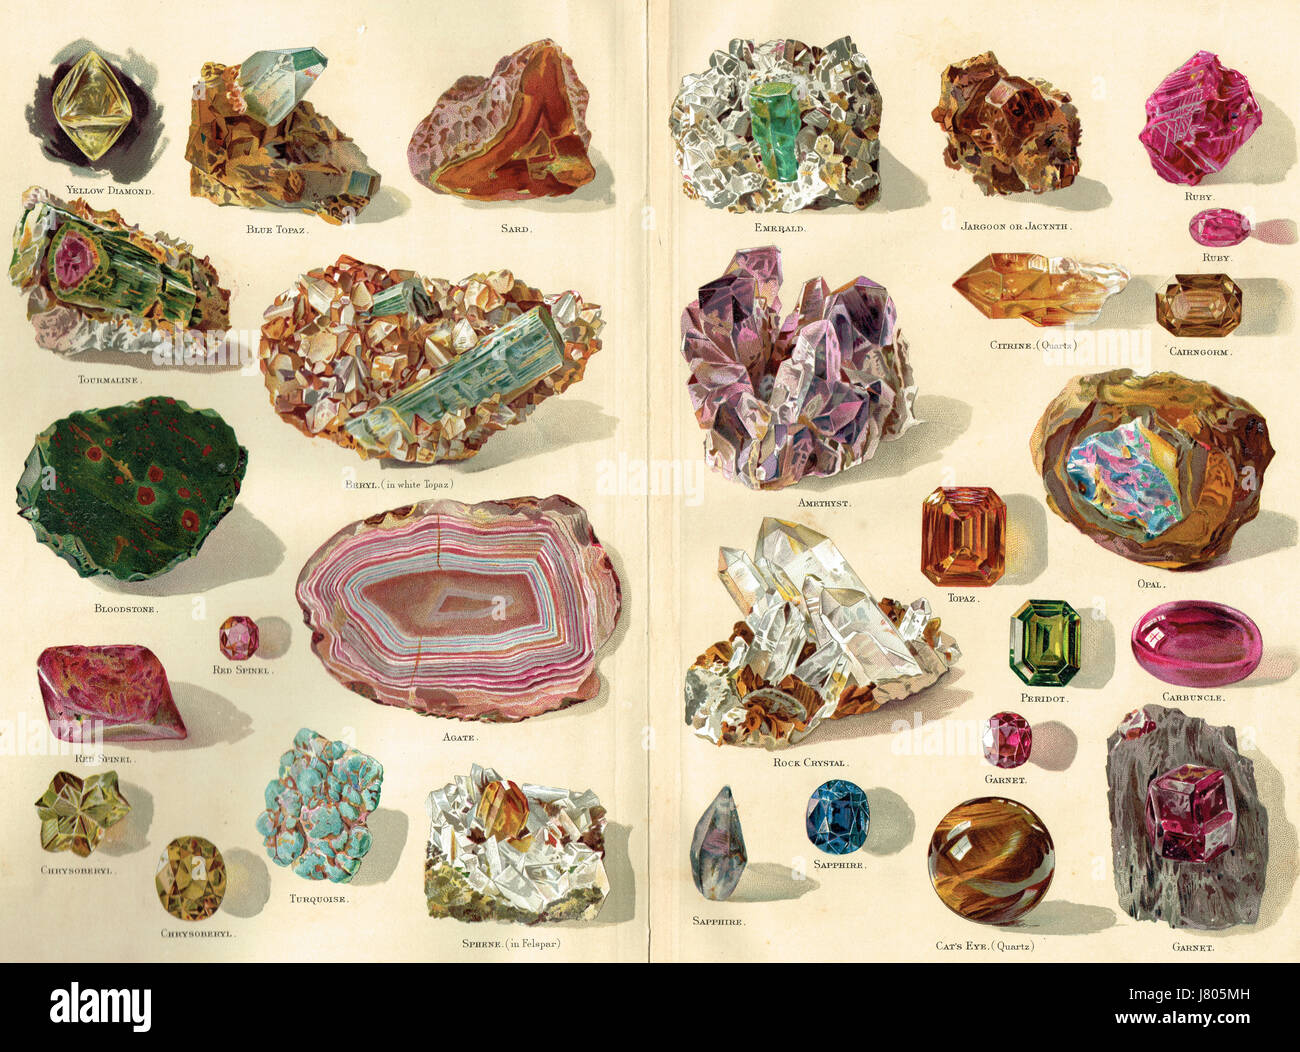 Illustration of Precious Stones selection 1898 - Stock Image